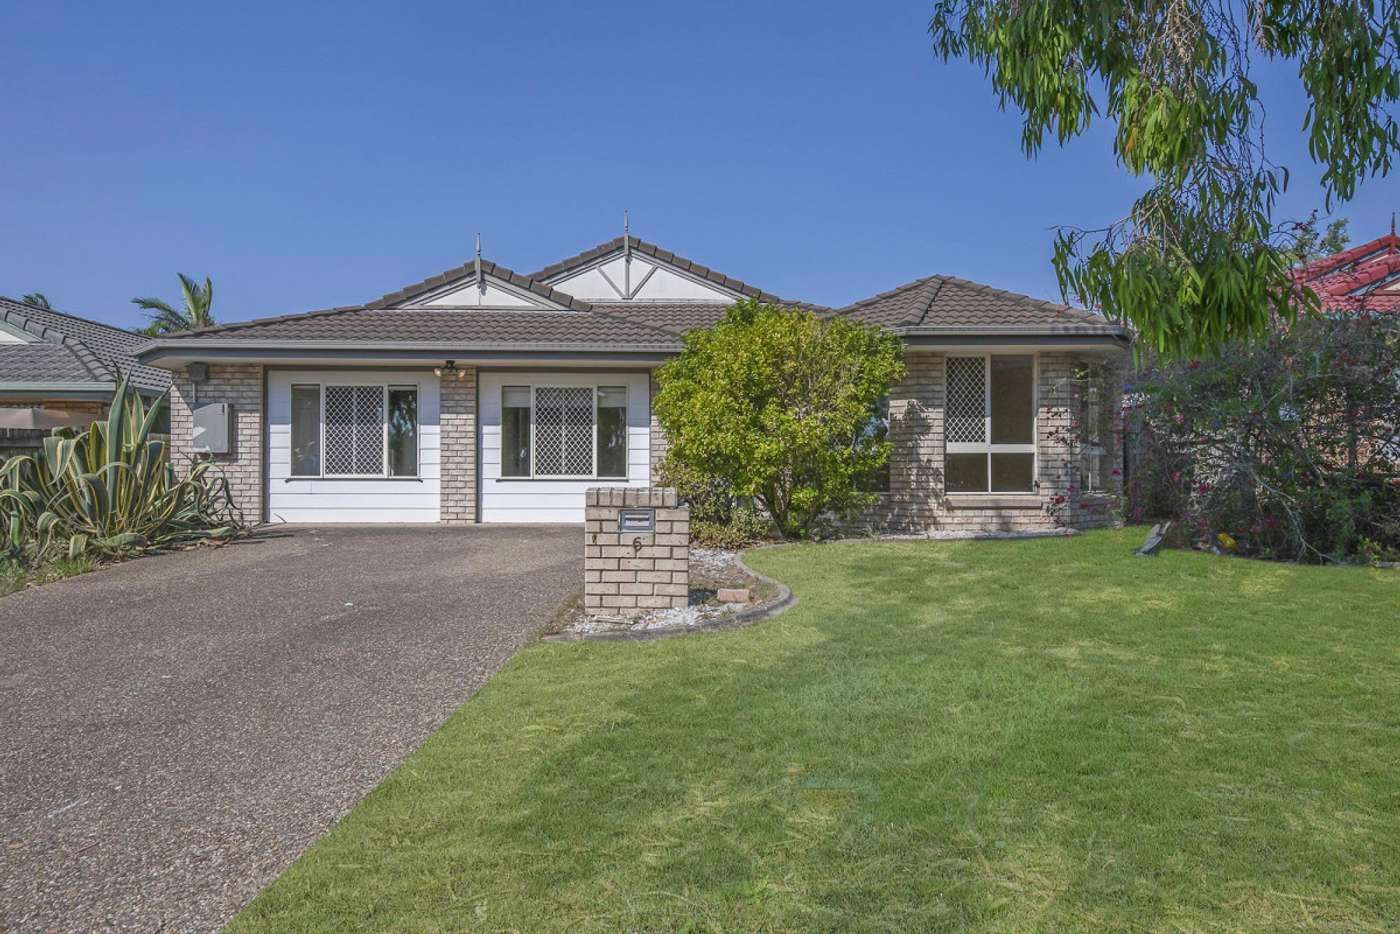 Main view of Homely house listing, 6 Allarton Street, Coopers Plains QLD 4108